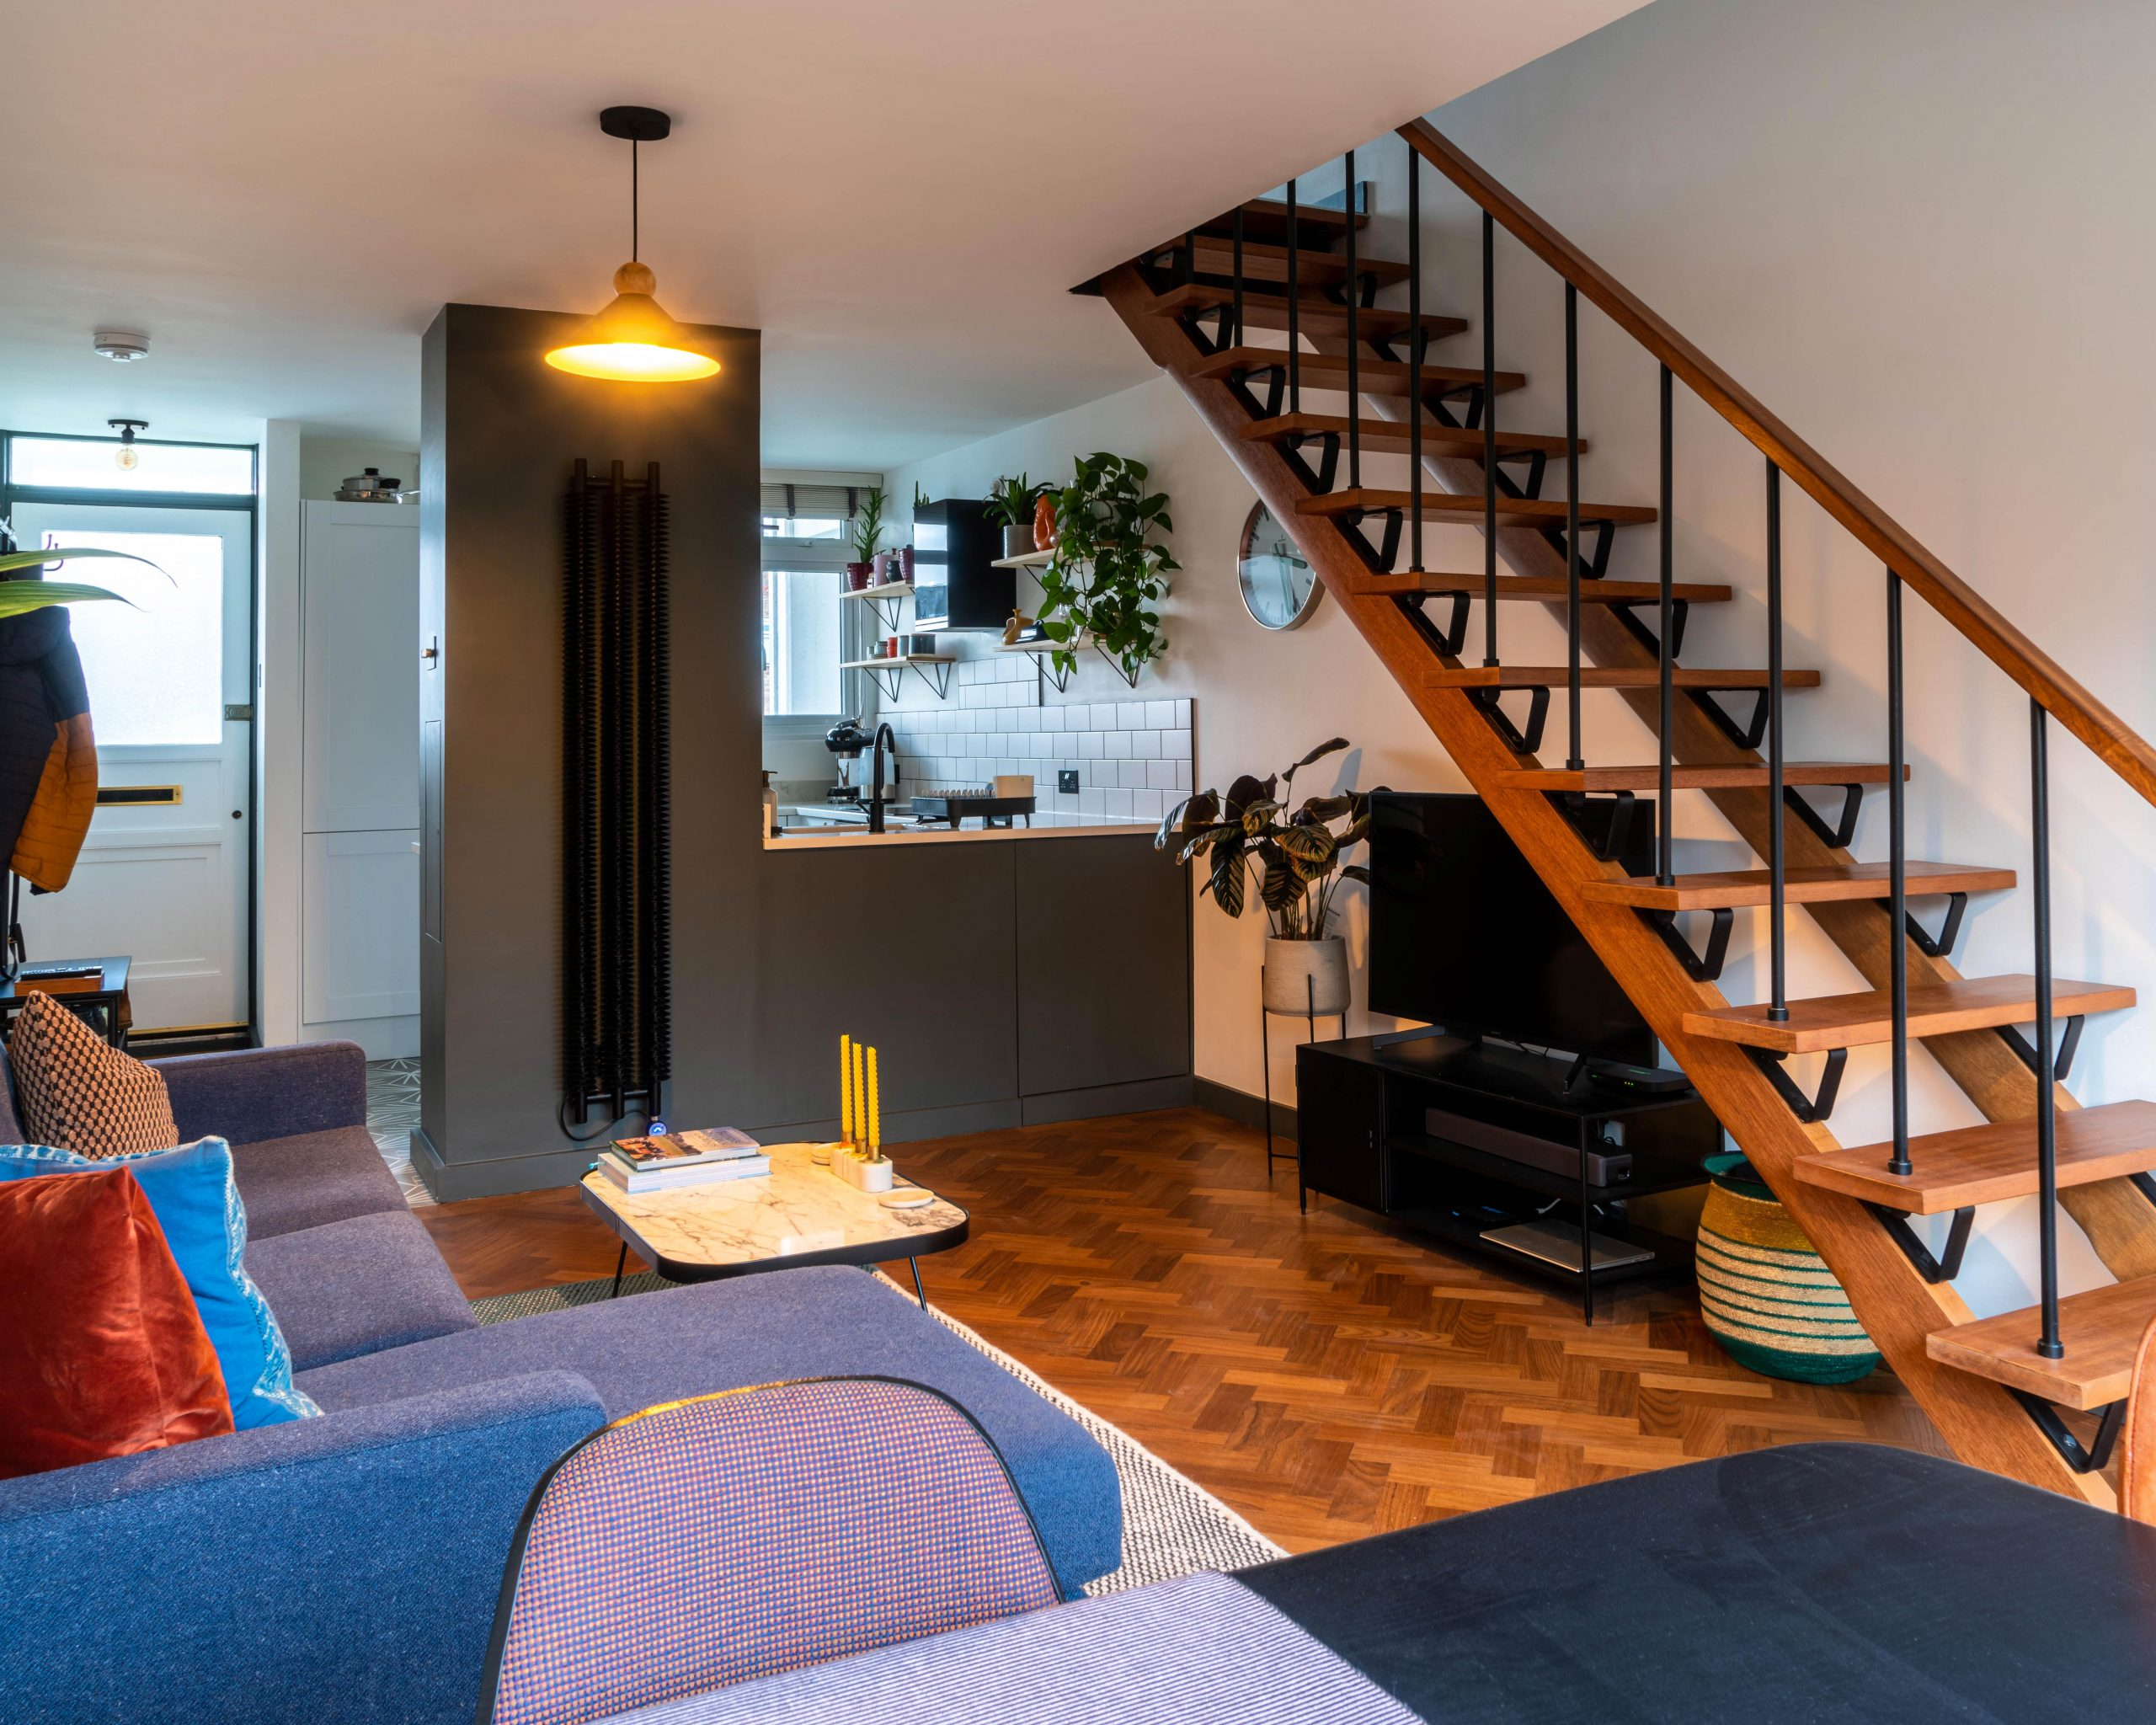 Russell Hewes house renovation in london putney